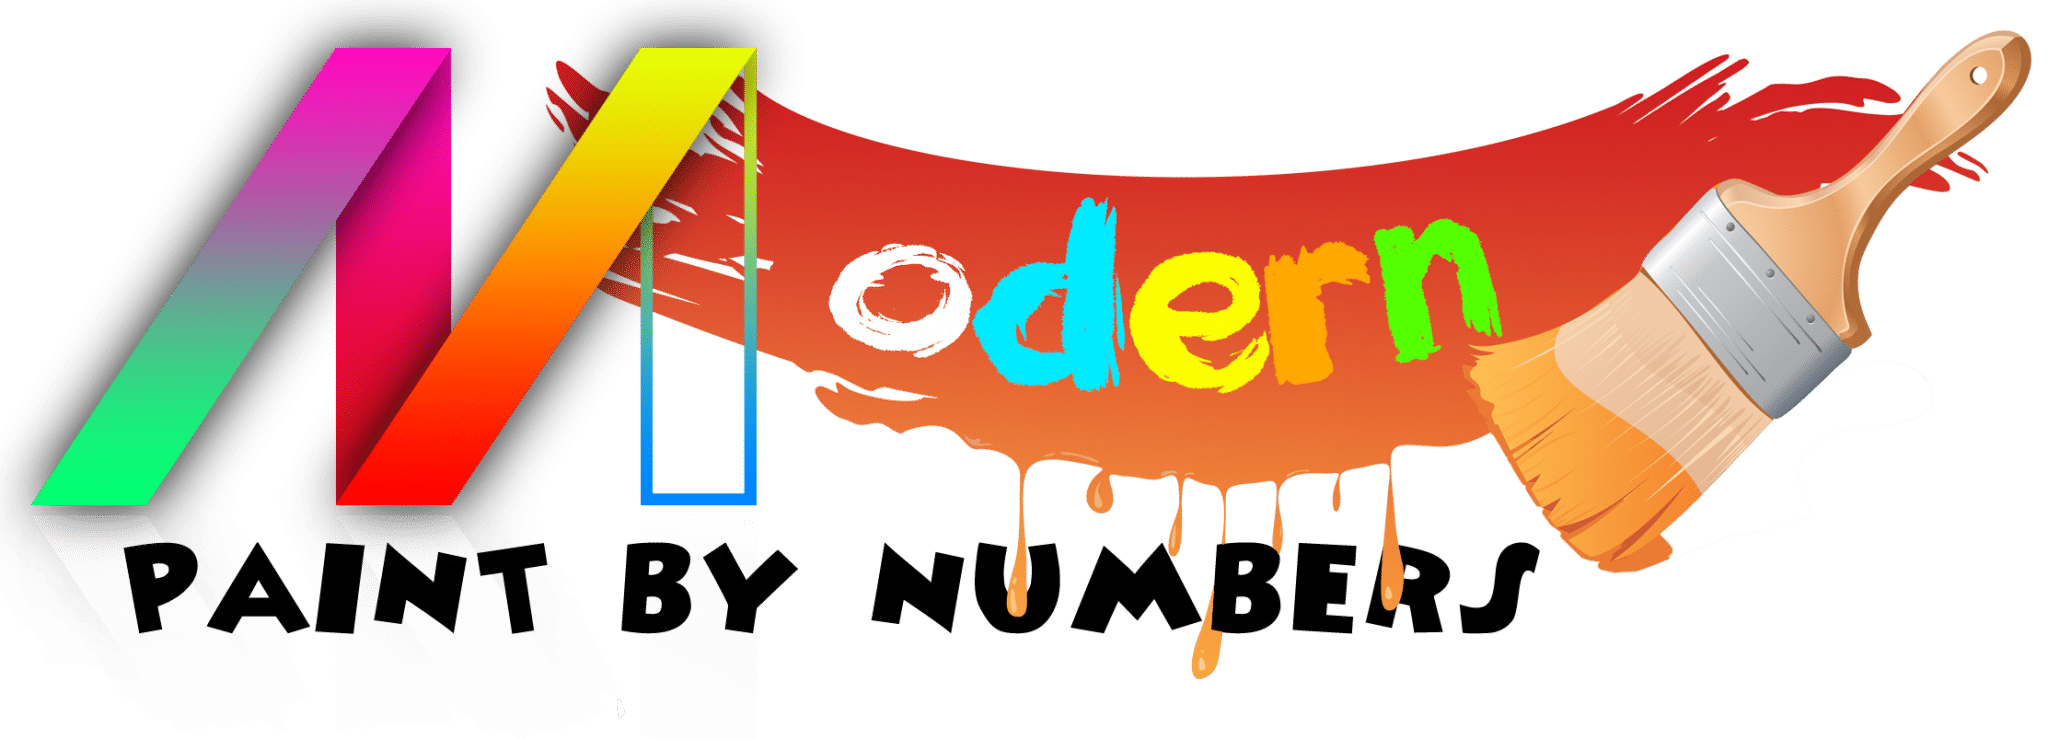 Modern Paint by numbers